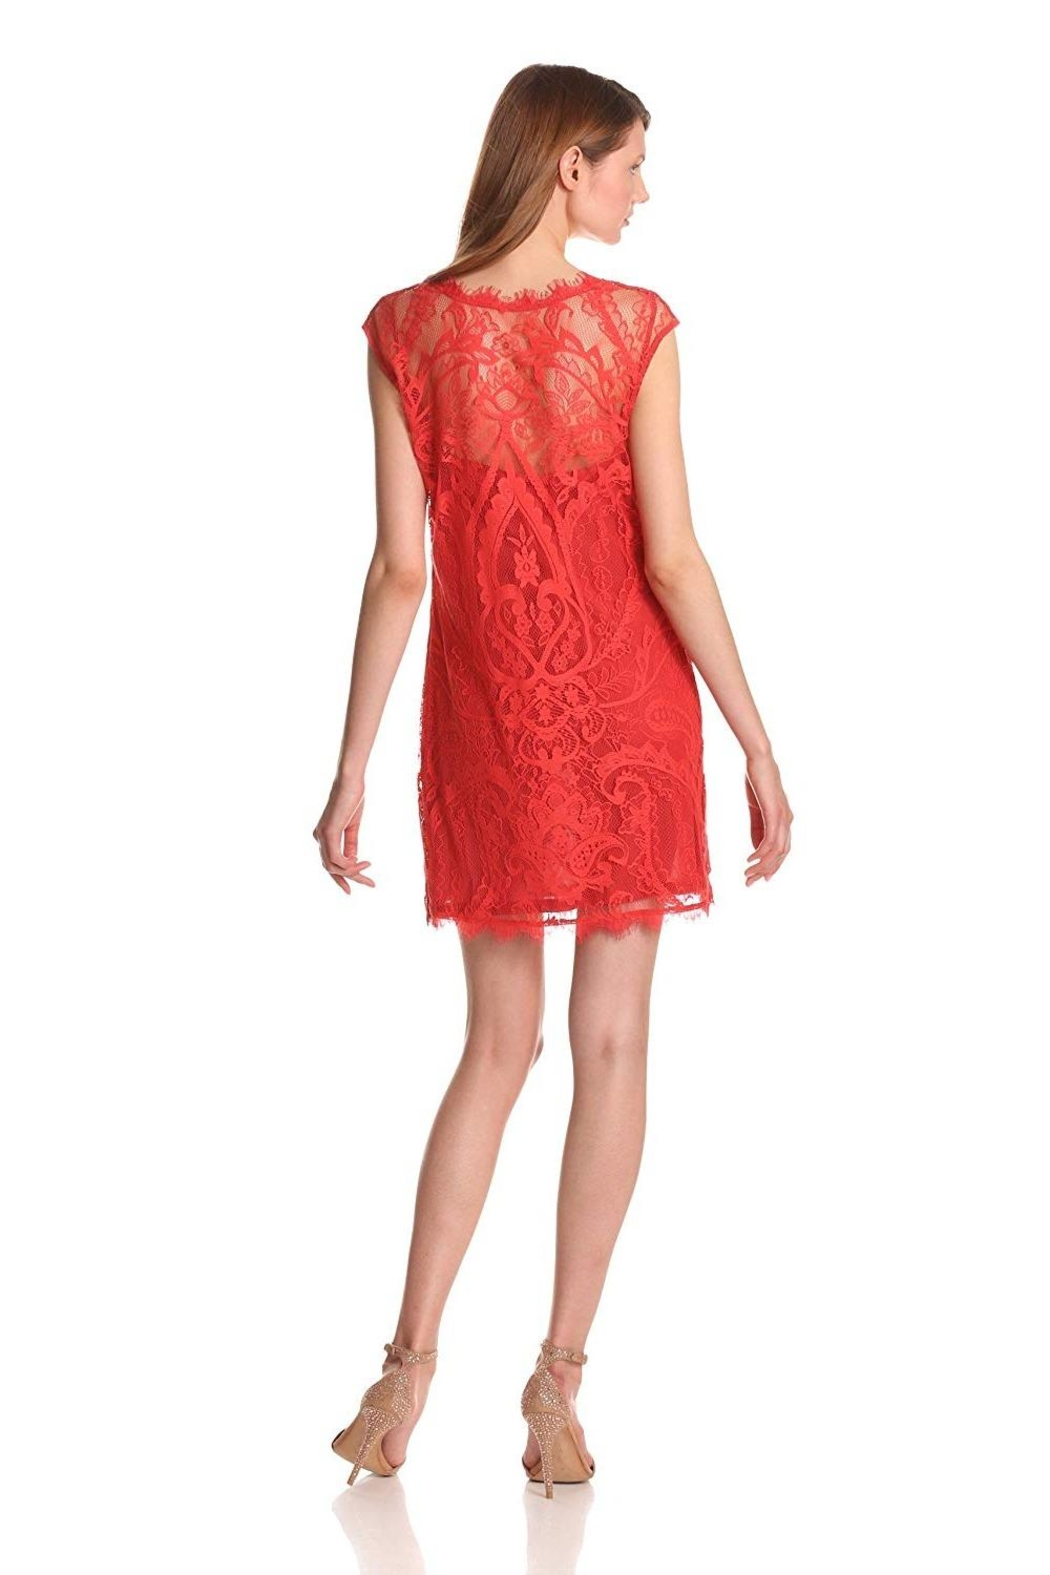 Nicole Miller Abby Lace Dress - Front Full Image